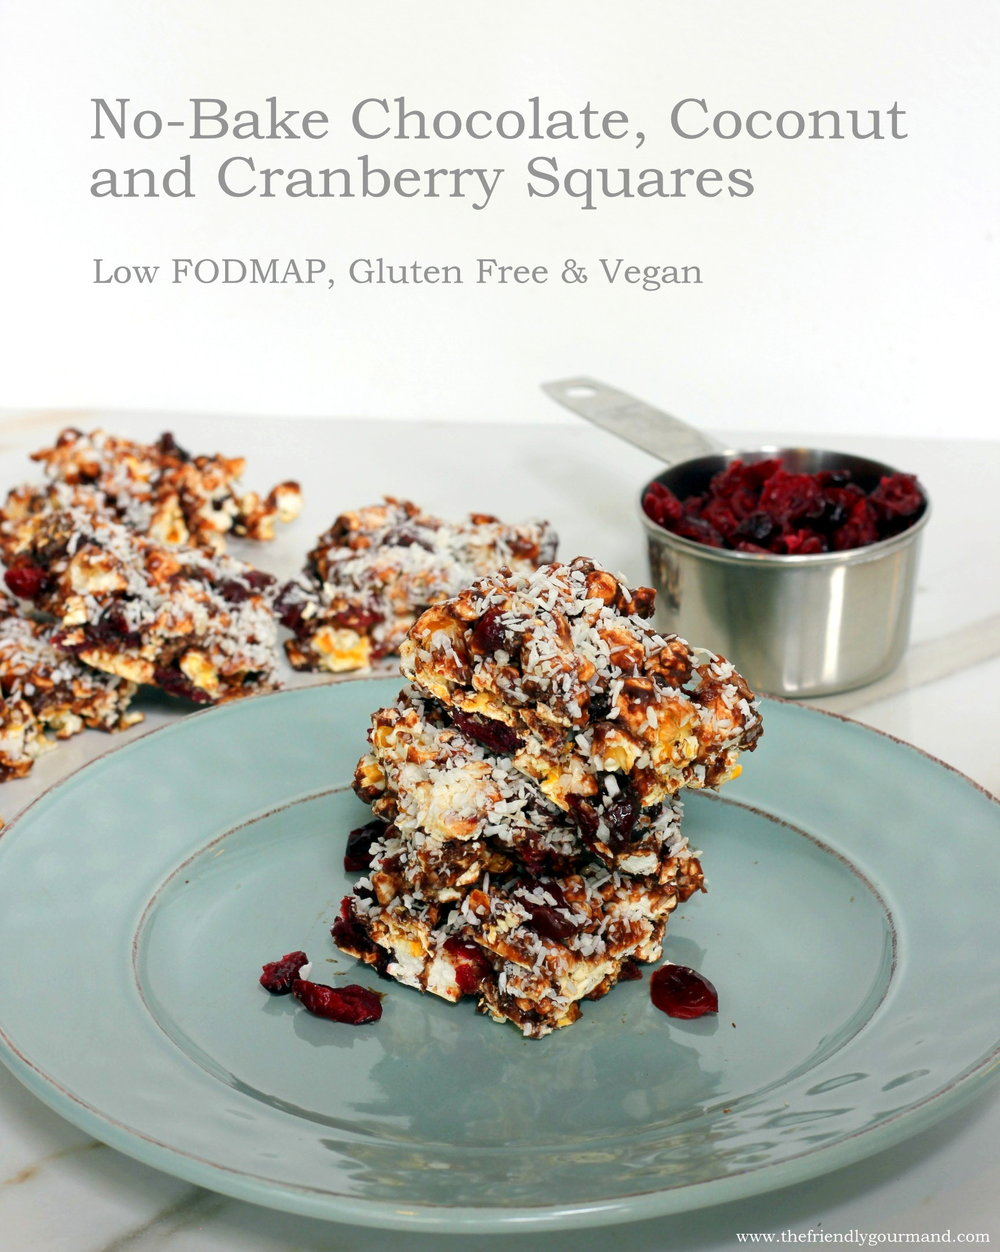 no-bake-chocolate-coconut-cranberry-squares-low-fodmap-friendly-gluten-free-vegan